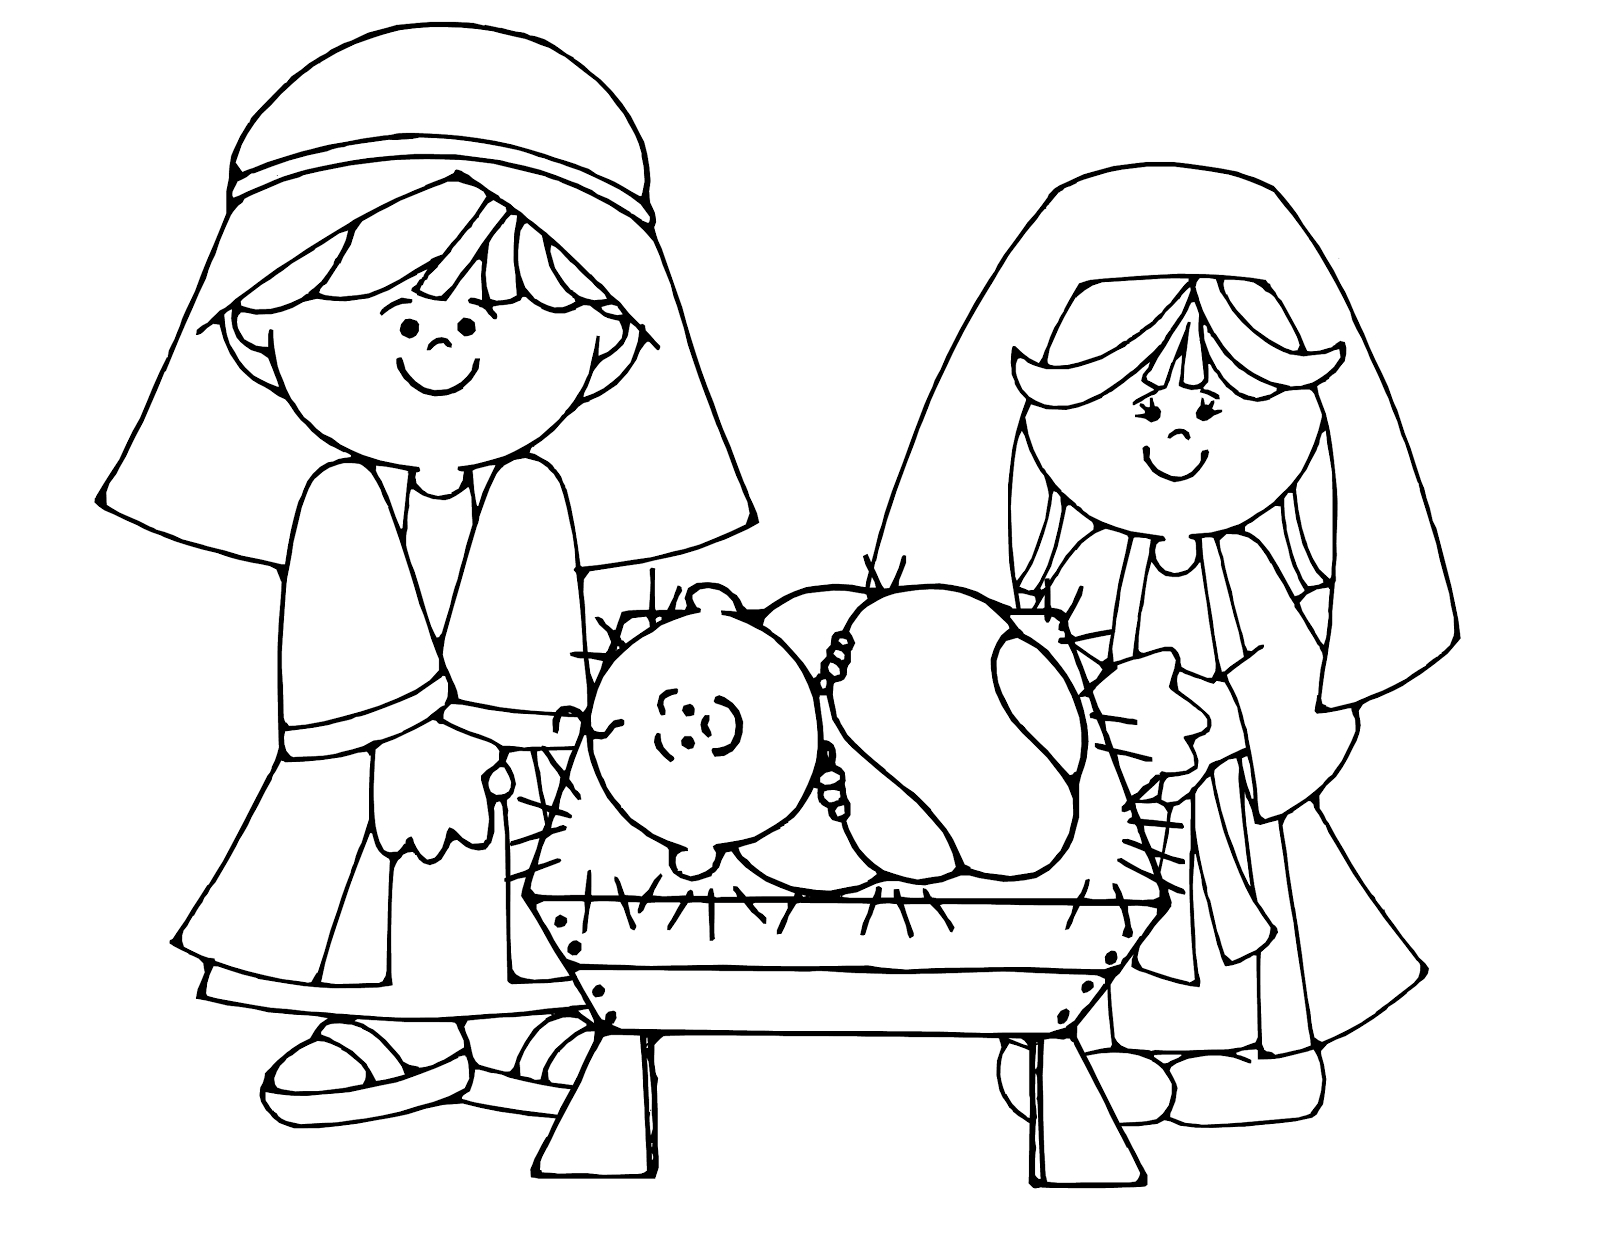 1600x1236 New Jesus Coloring Pages For Kids Printable Design Free Coloring